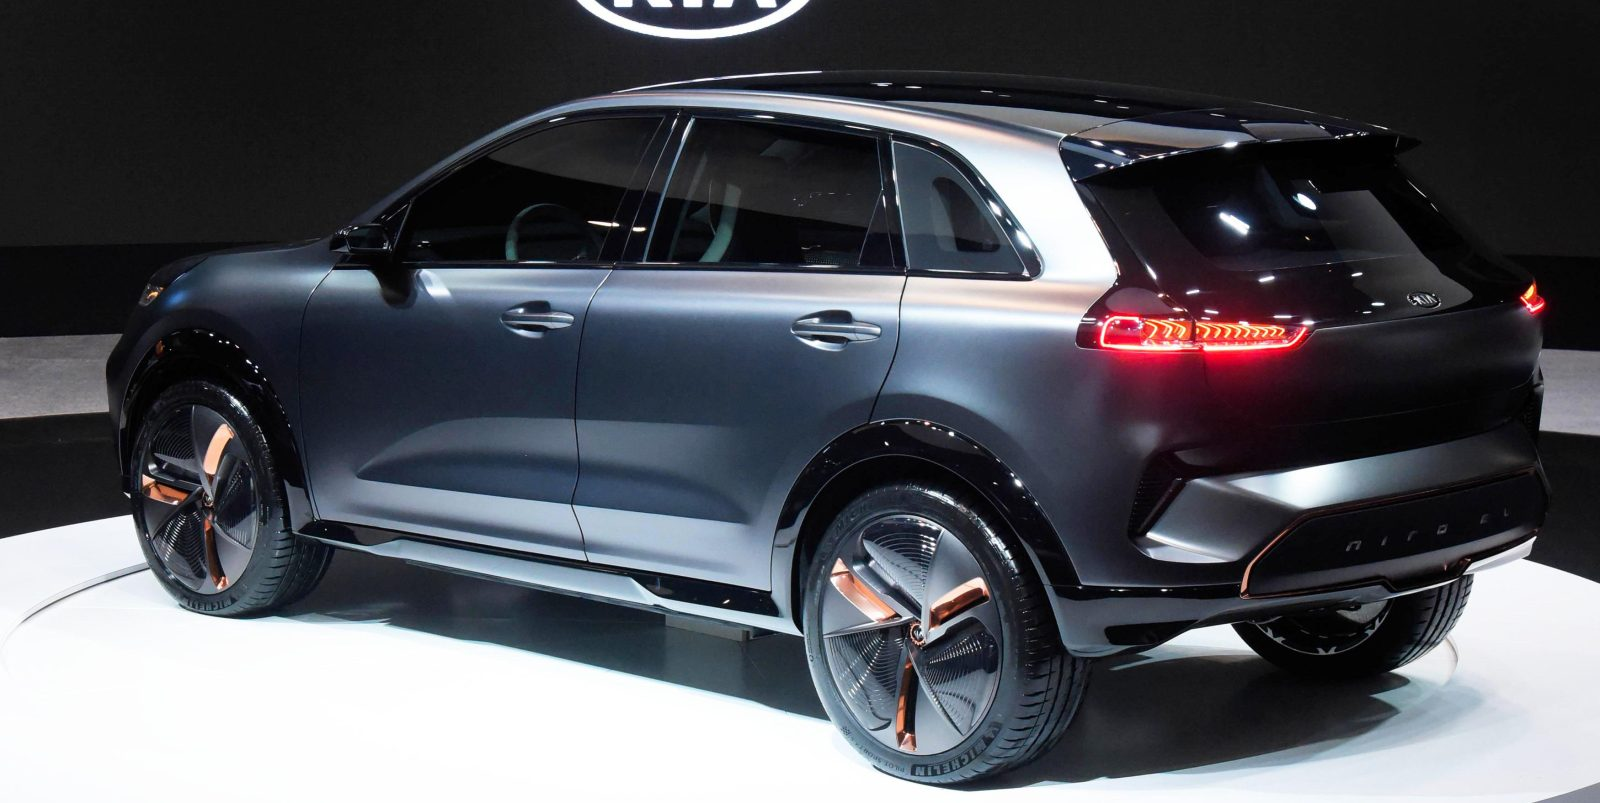 sub kia suv photos spy side front small compact